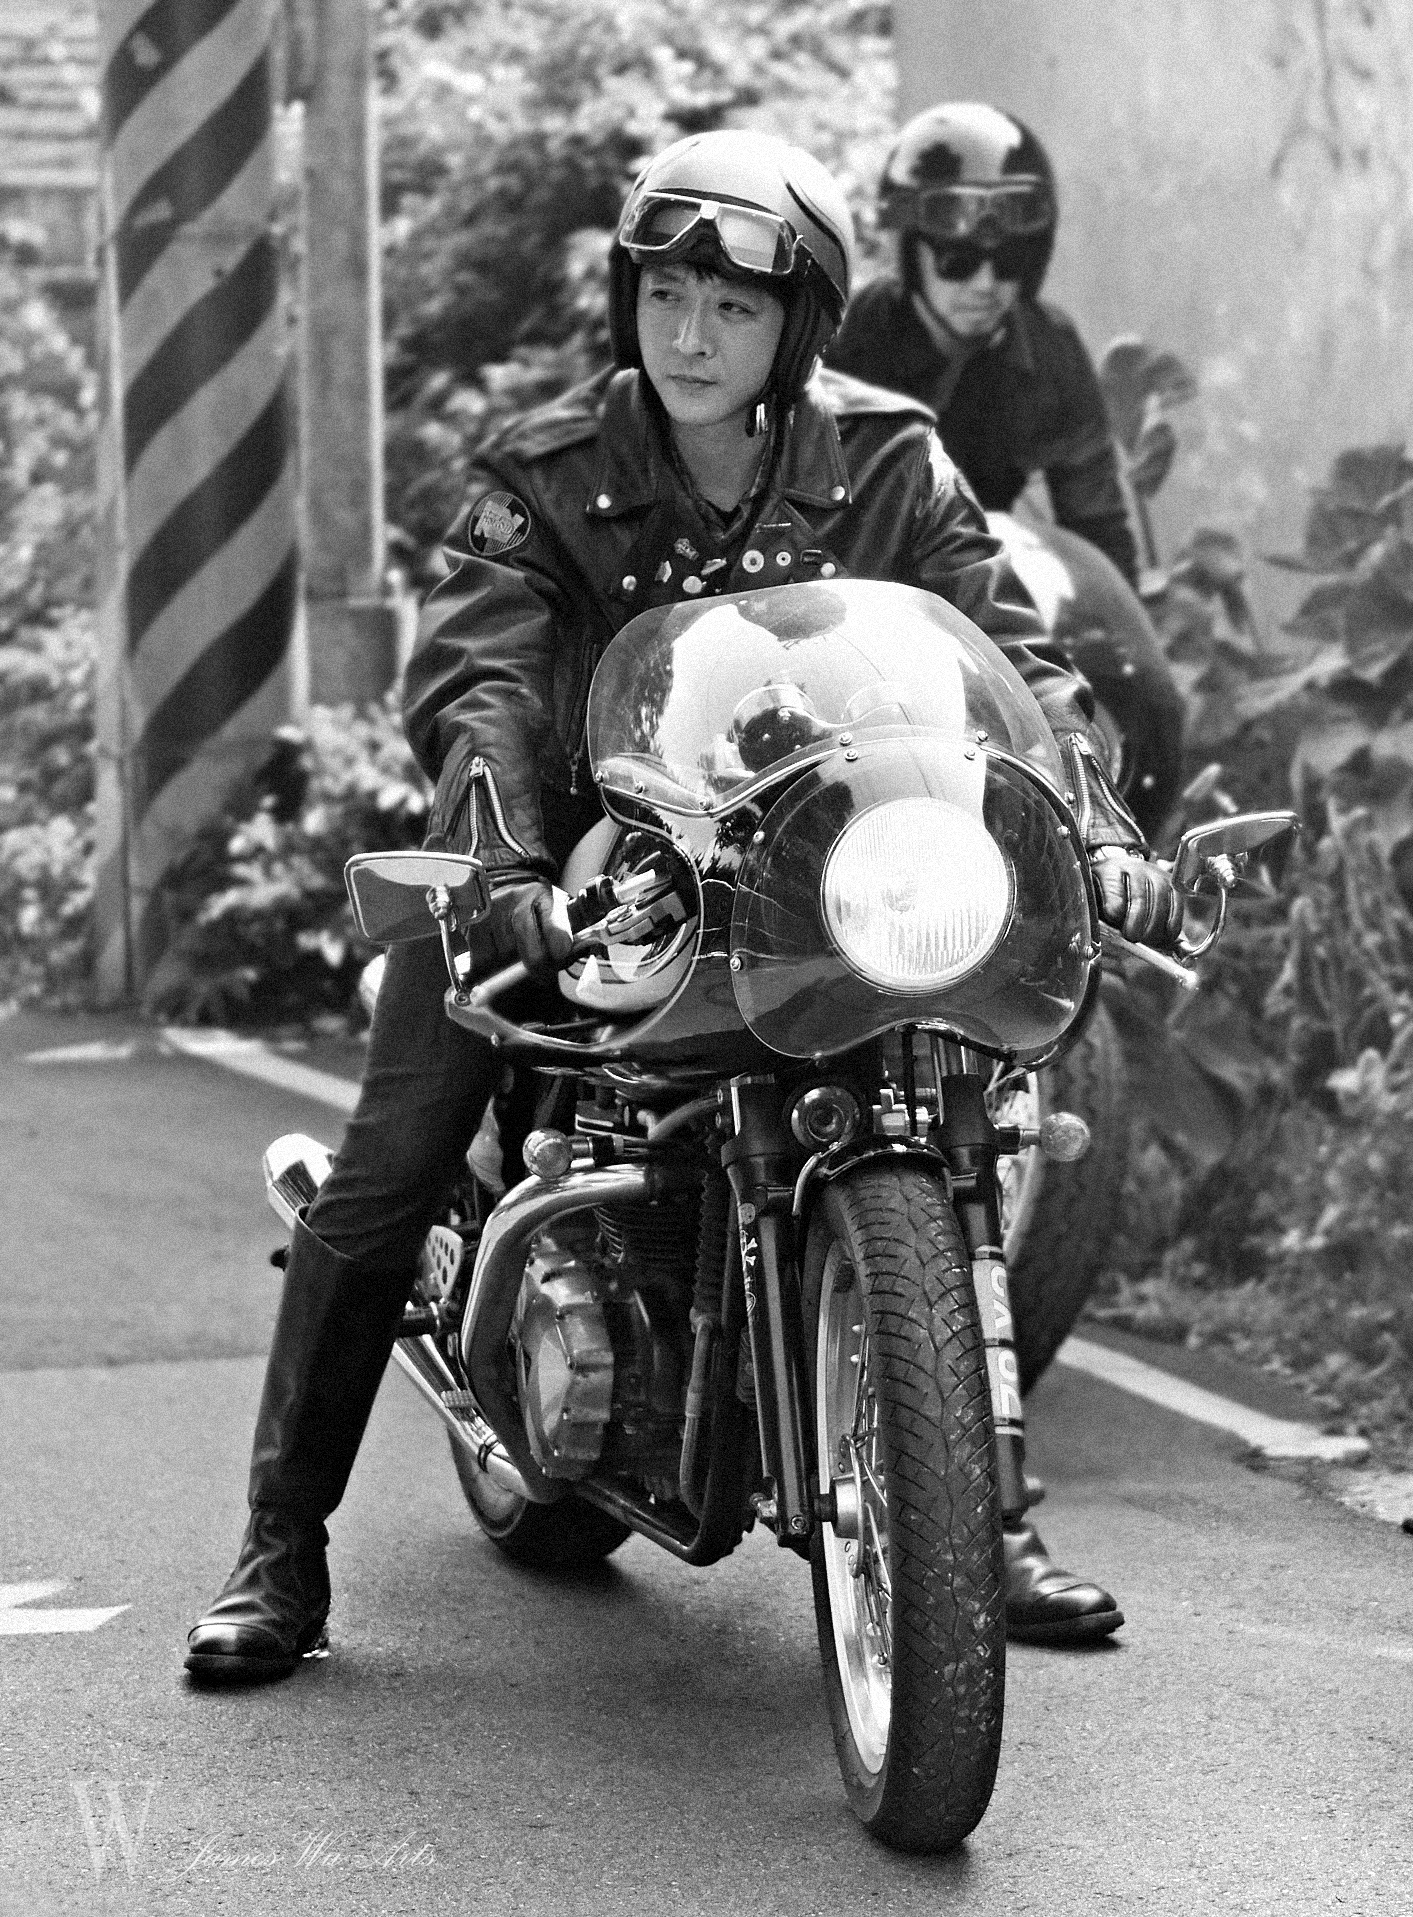 TONUP ROCKERS CAFE RACER (1)